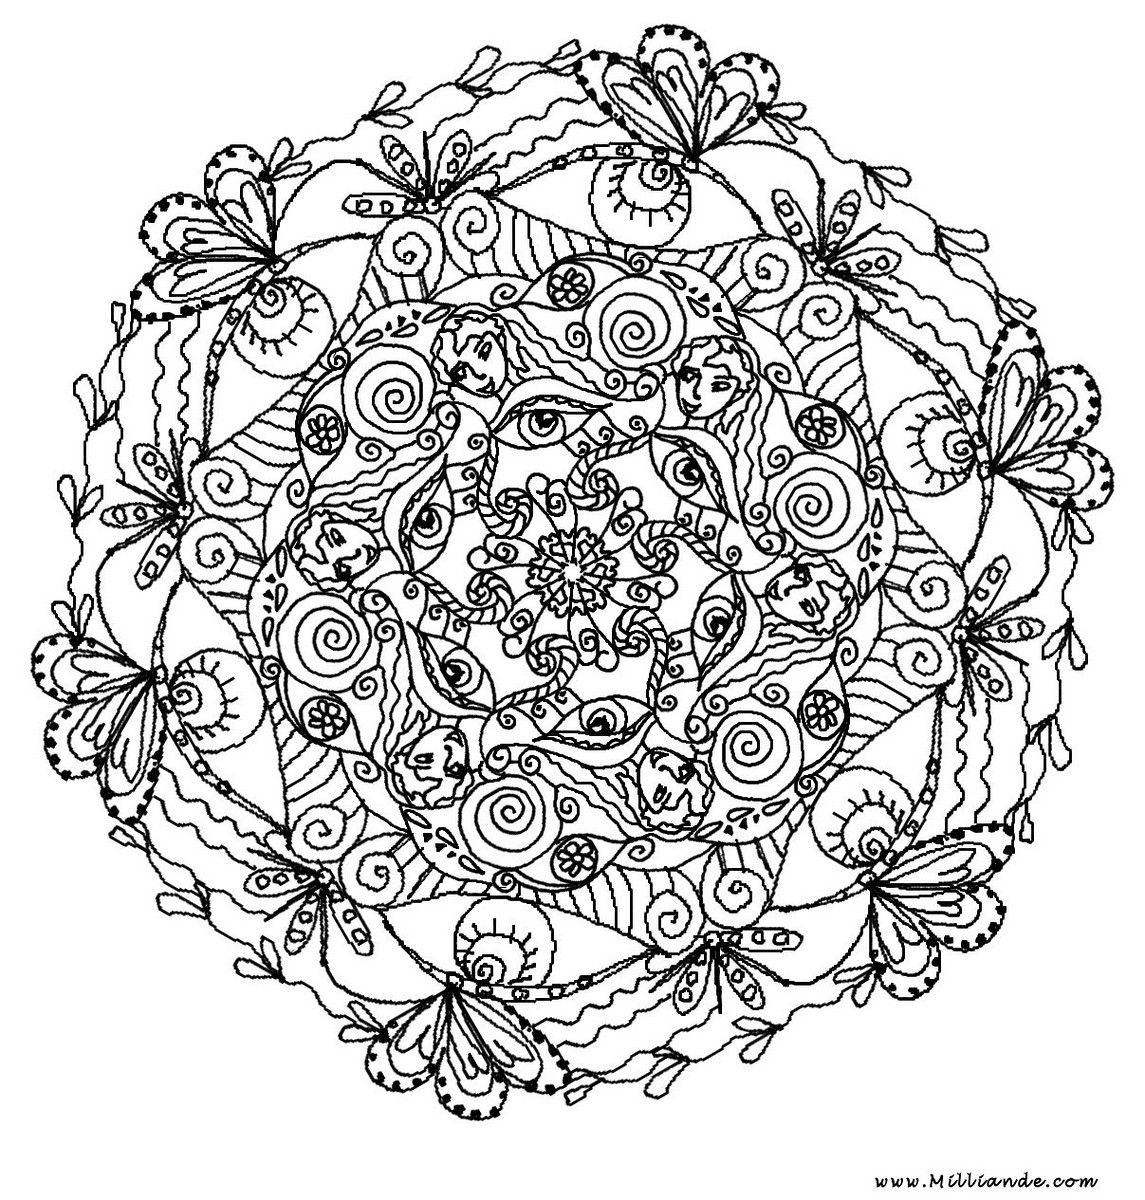 Christmas mandala coloring pages printable az coloring pages for Printable mandala coloring pages for adults